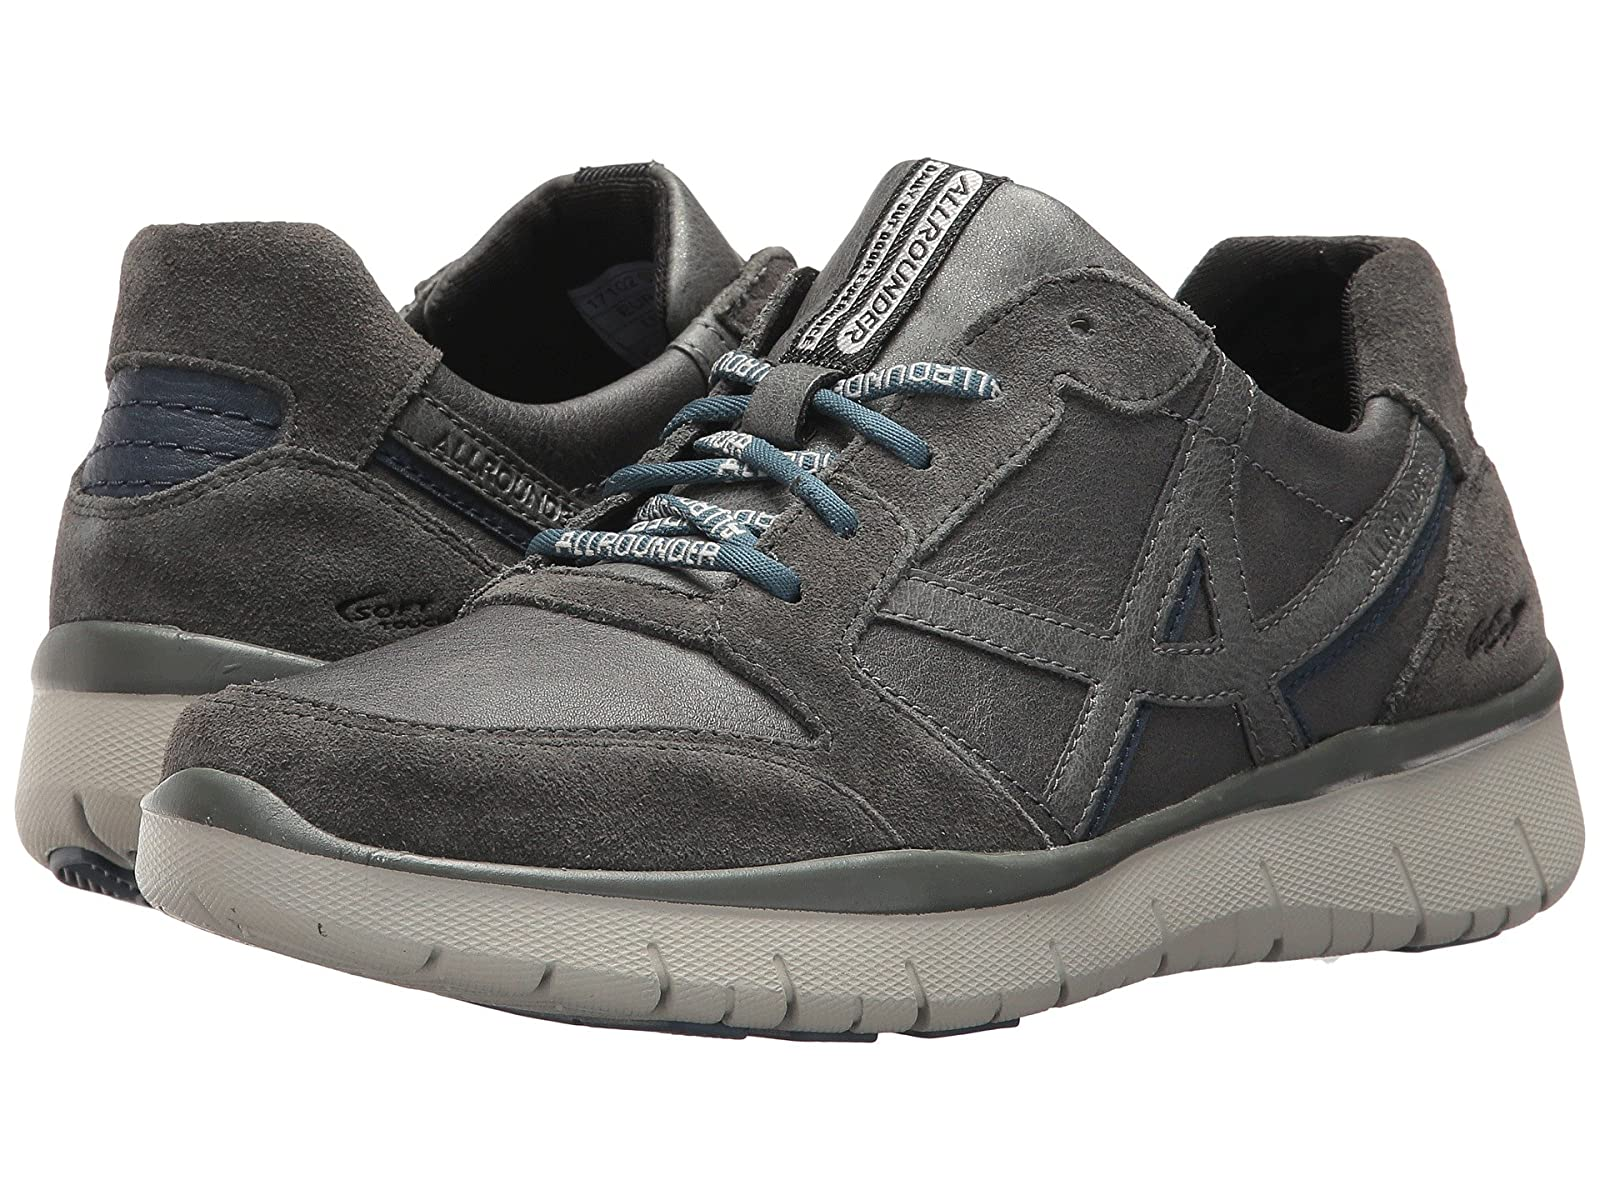 Allrounder by Mephisto LucayaAtmospheric grades have affordable shoes